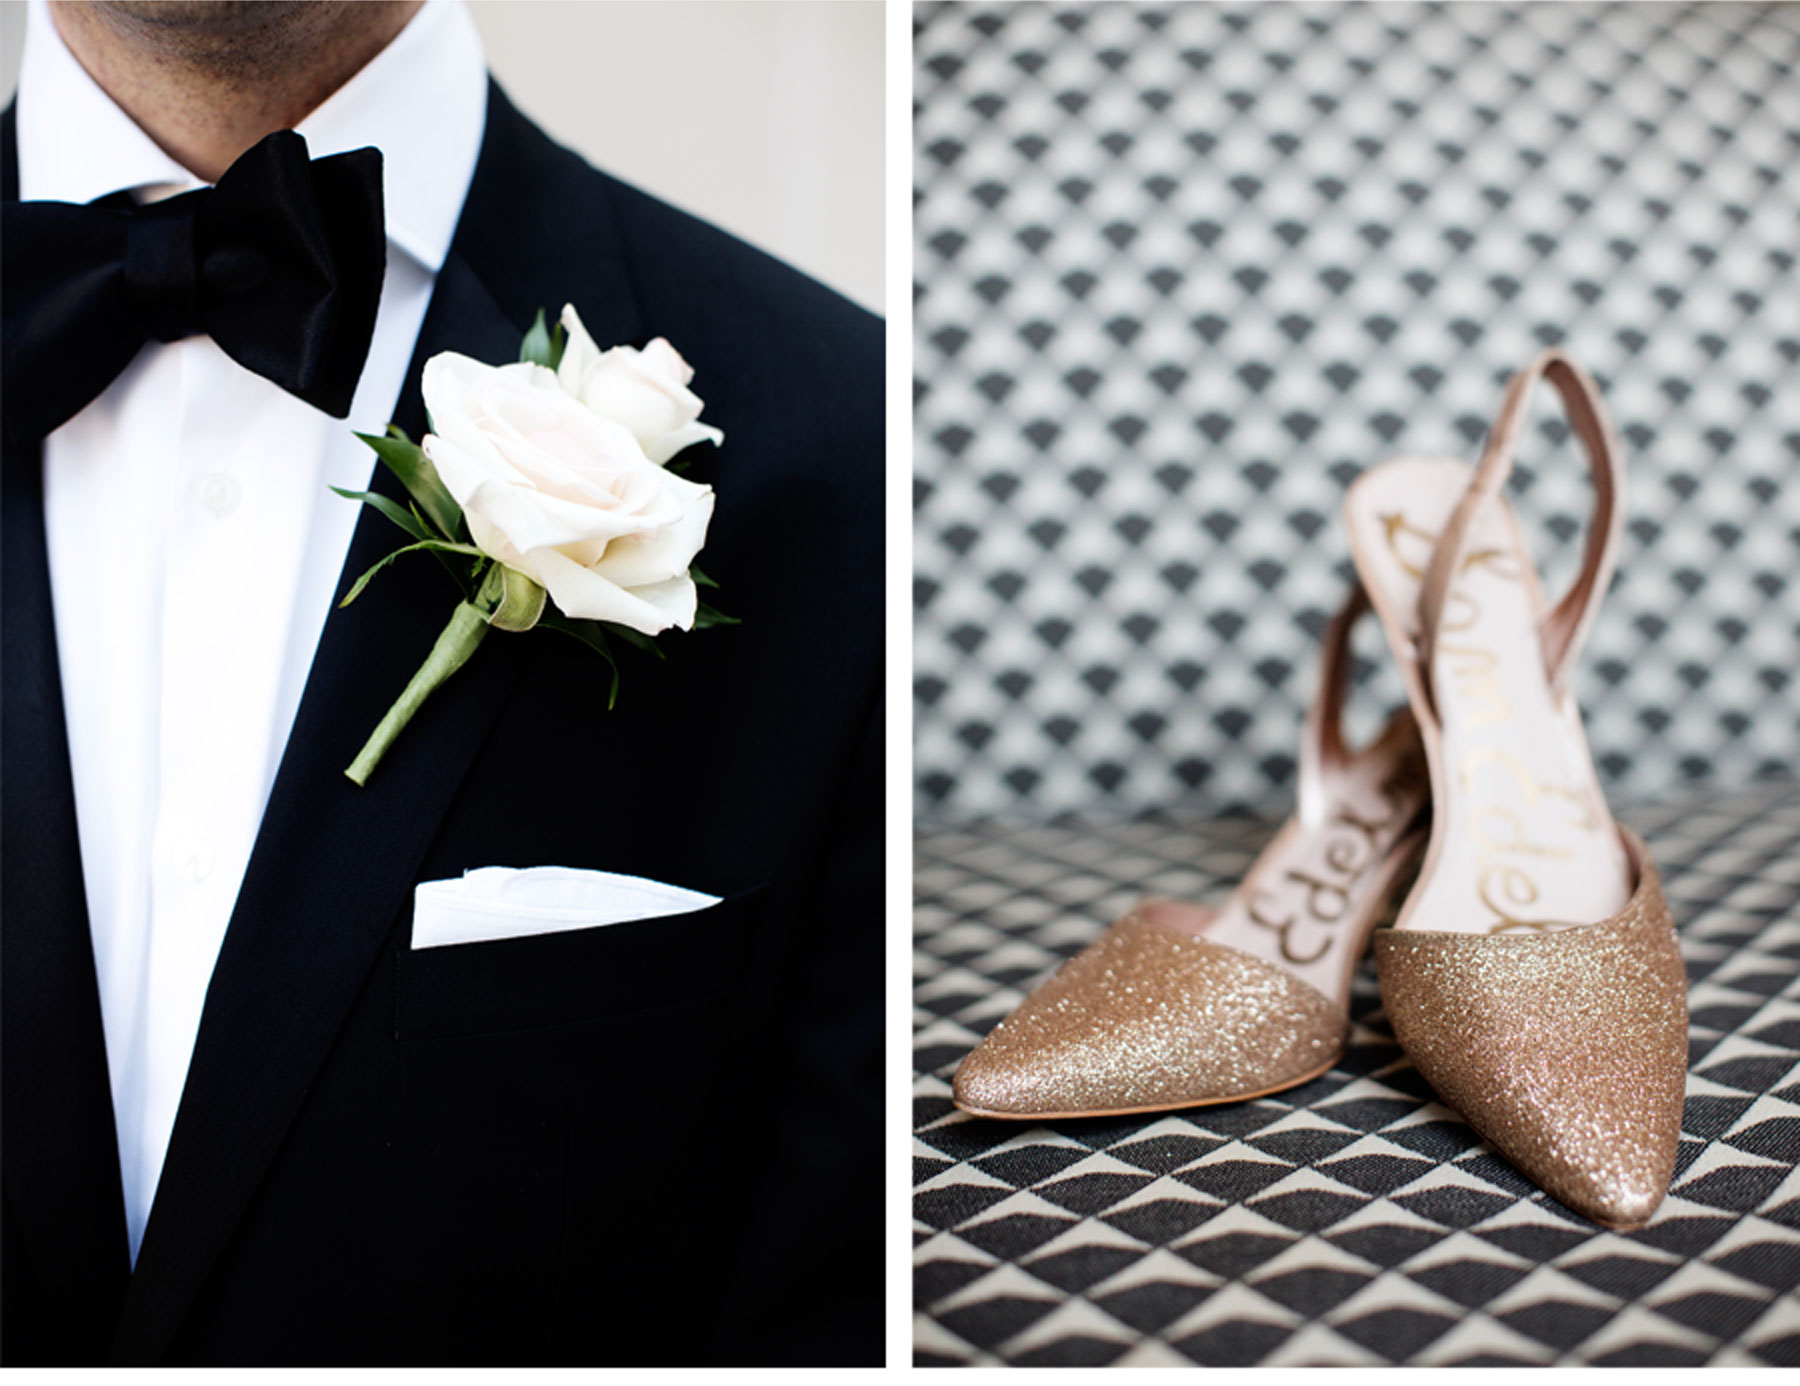 Our Muse - Romantic Lace-Inspired Wedding - Be inspired by Jacey and Aaron's romantic, lace-inspired wedding - wedding